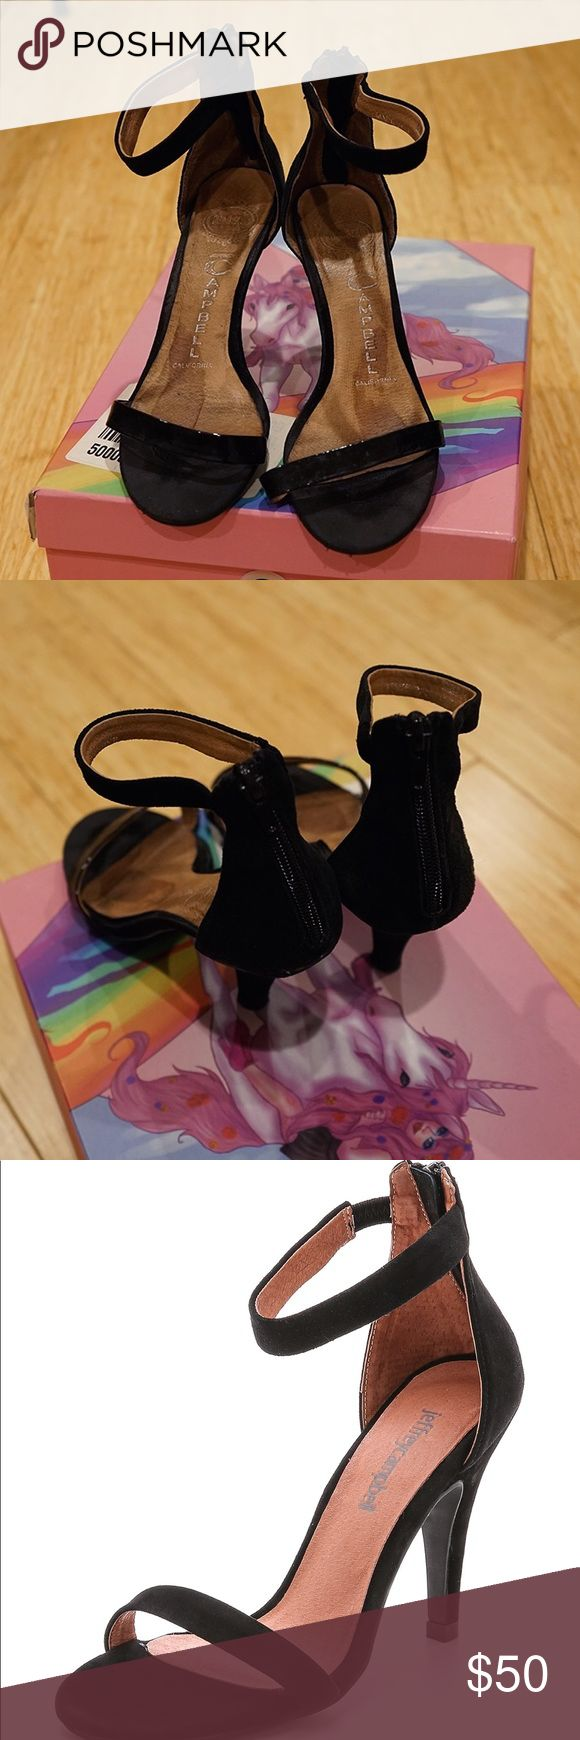 Jeffrey Campbell Black Strap Heel 6.5 Classic heels in black ⚫️ worn but still have great life in them. The back has a zipper and the ankle strap has a small elastic part for stretch comfort.  Box included. Jeffrey Campbell Shoes Sandals